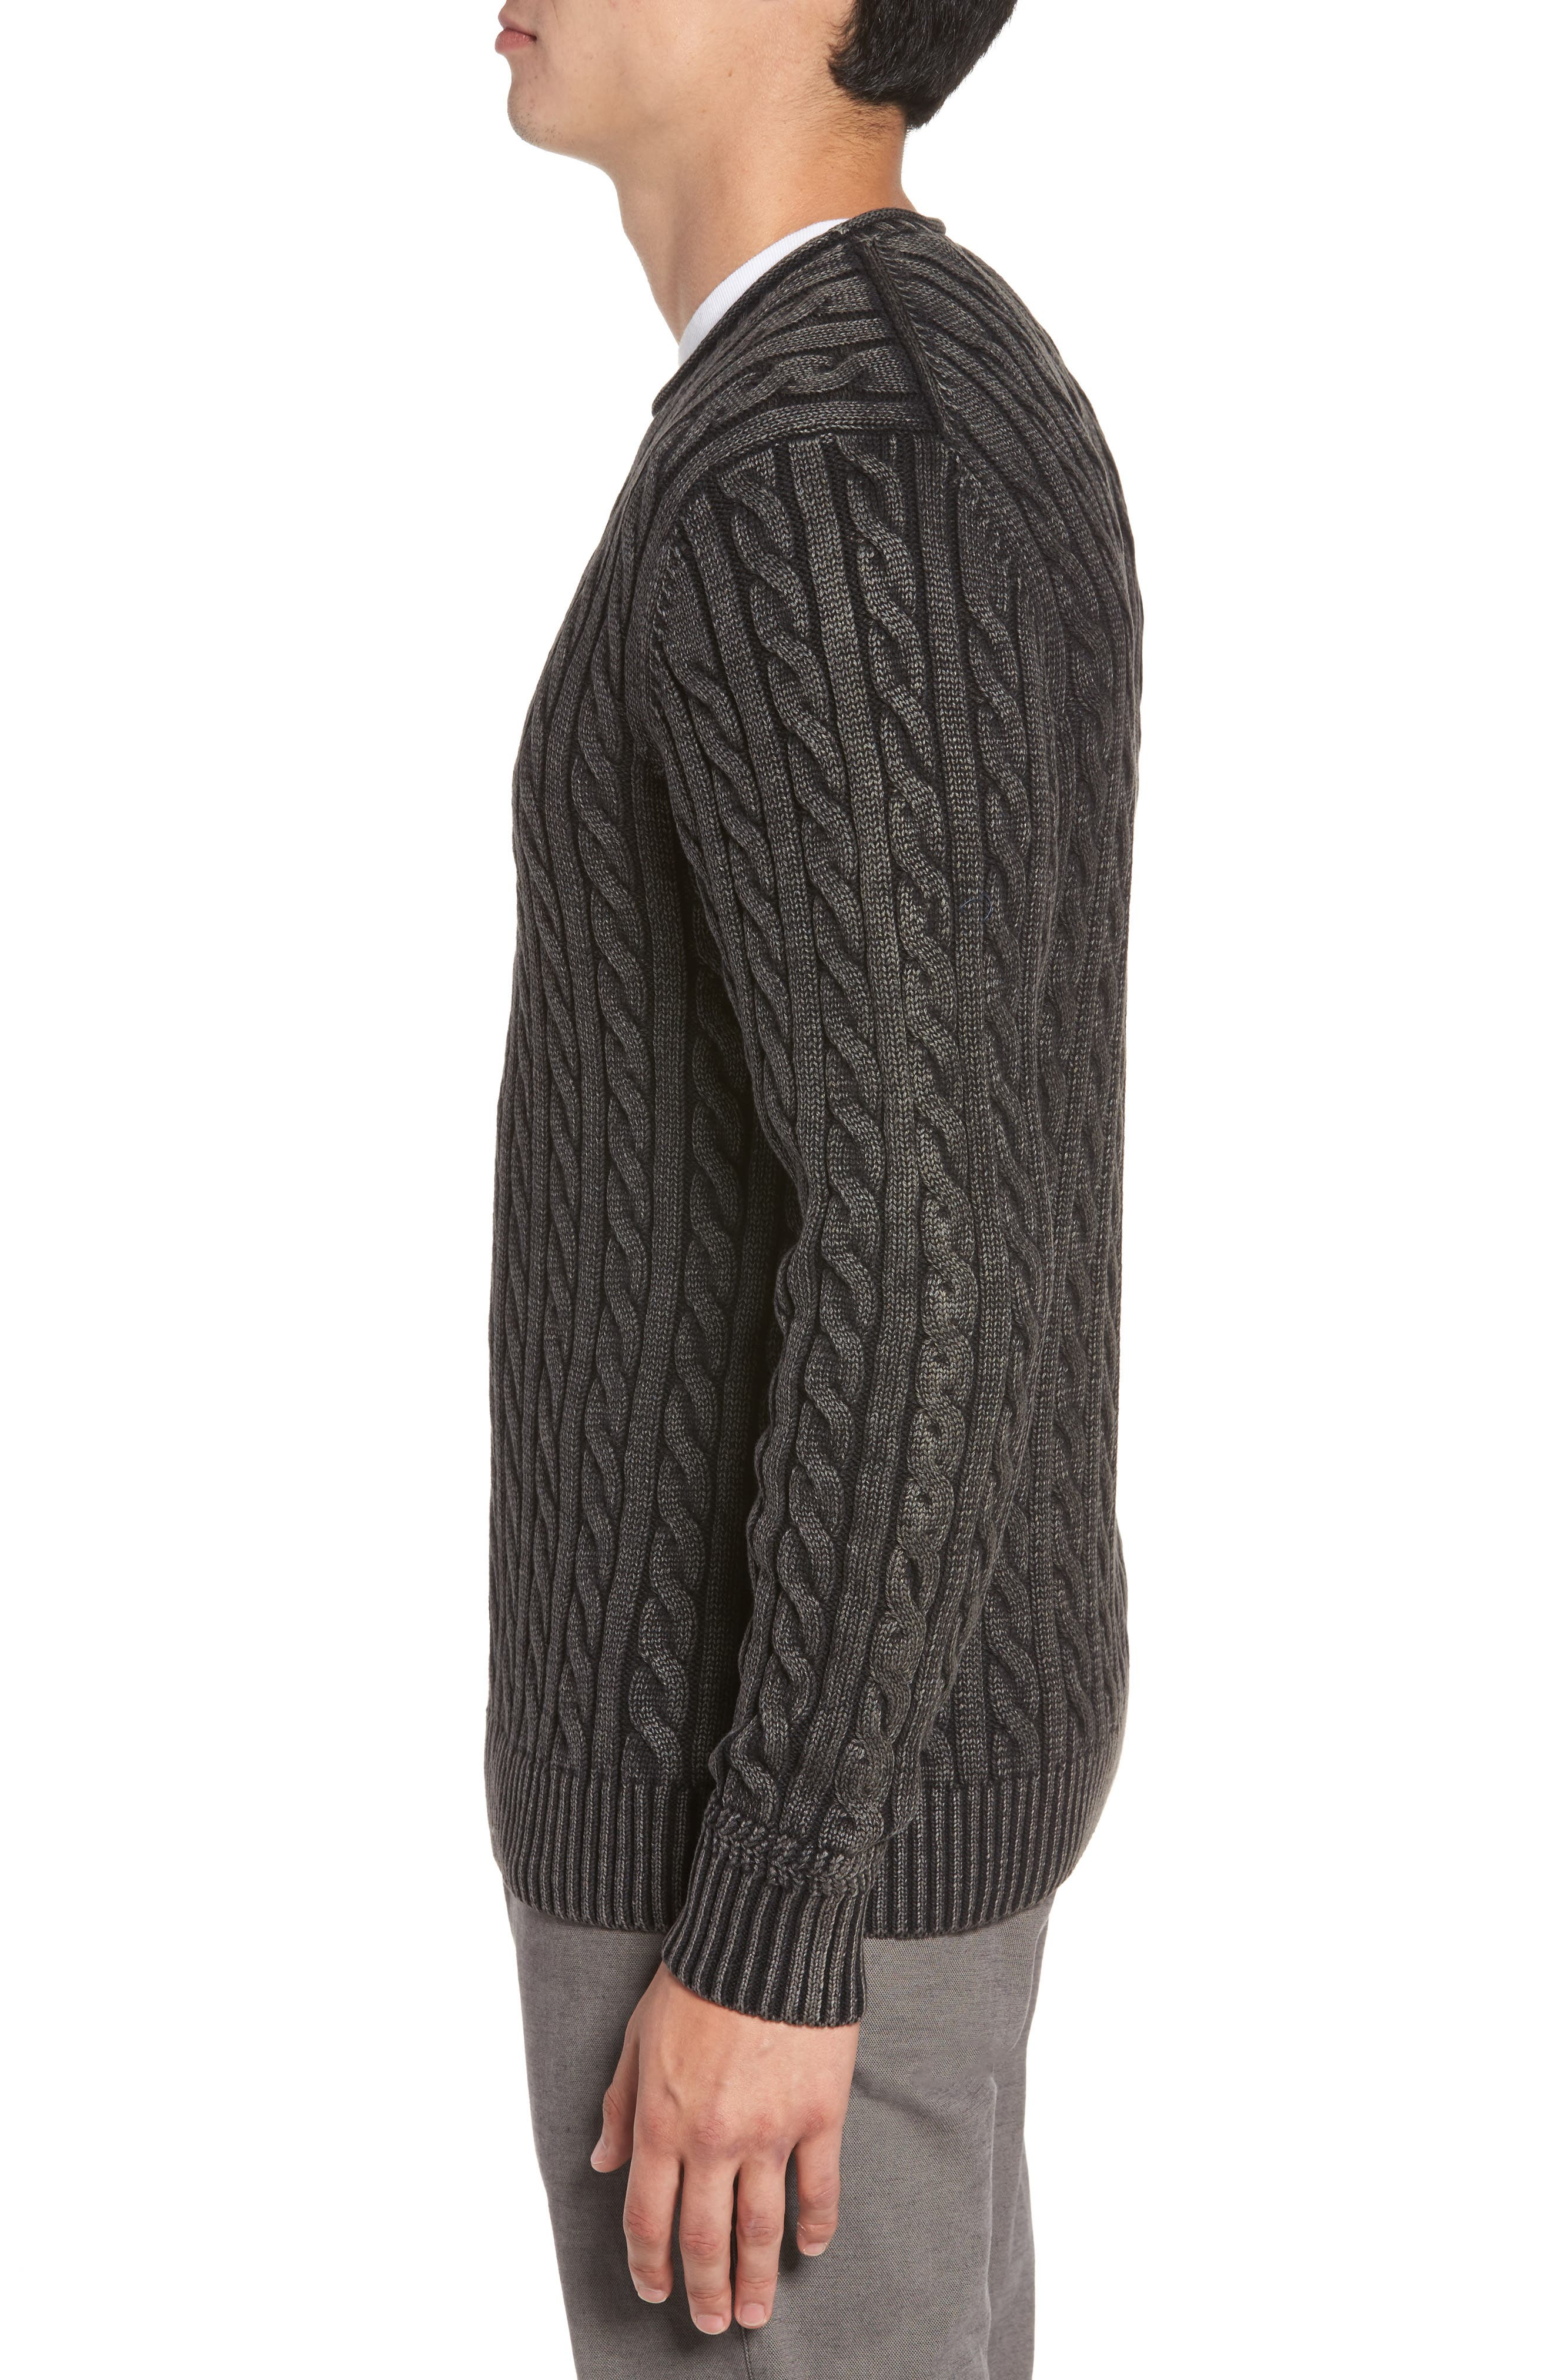 Landray Cable Knit Cotton Sweater,                             Alternate thumbnail 3, color,                             021